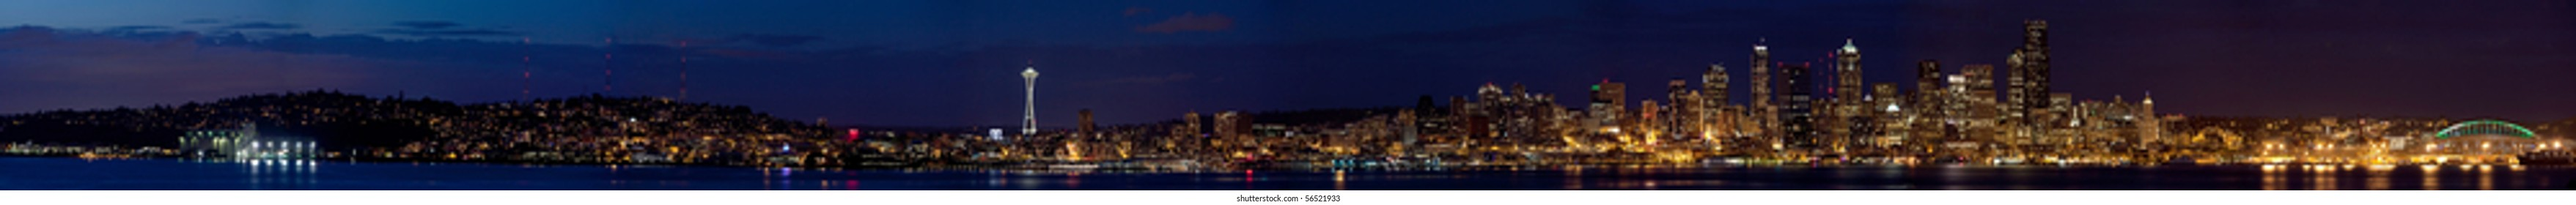 Super long Banner of Seattle Skyline at night - use as a banner on webpage or border!